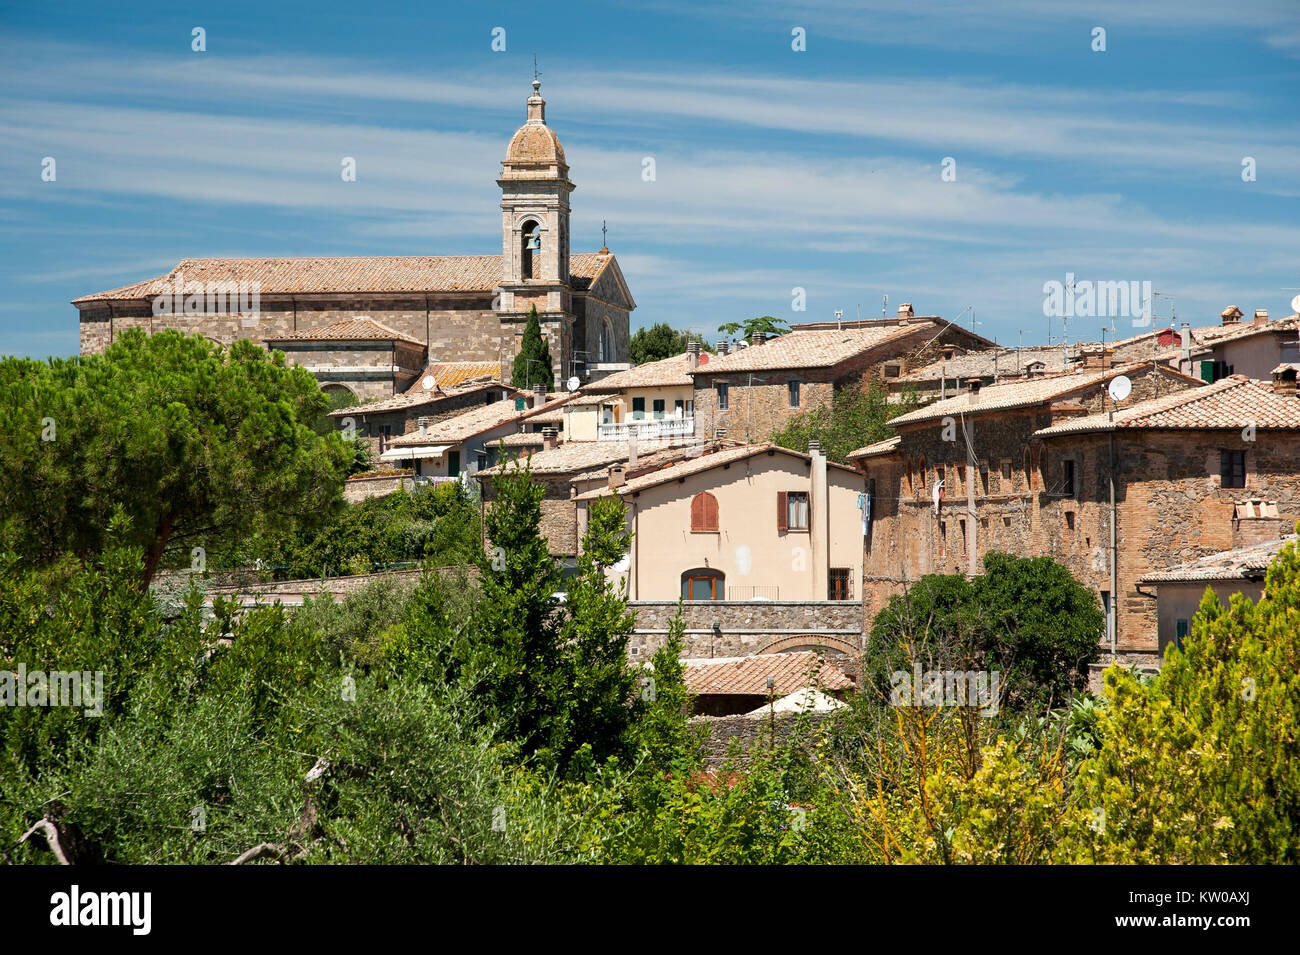 Neoclassical Concattedrale di San Salvatore (Co-cathedral of Holy Saviour) in Historical Old Town in Montalcino, - Stock Image